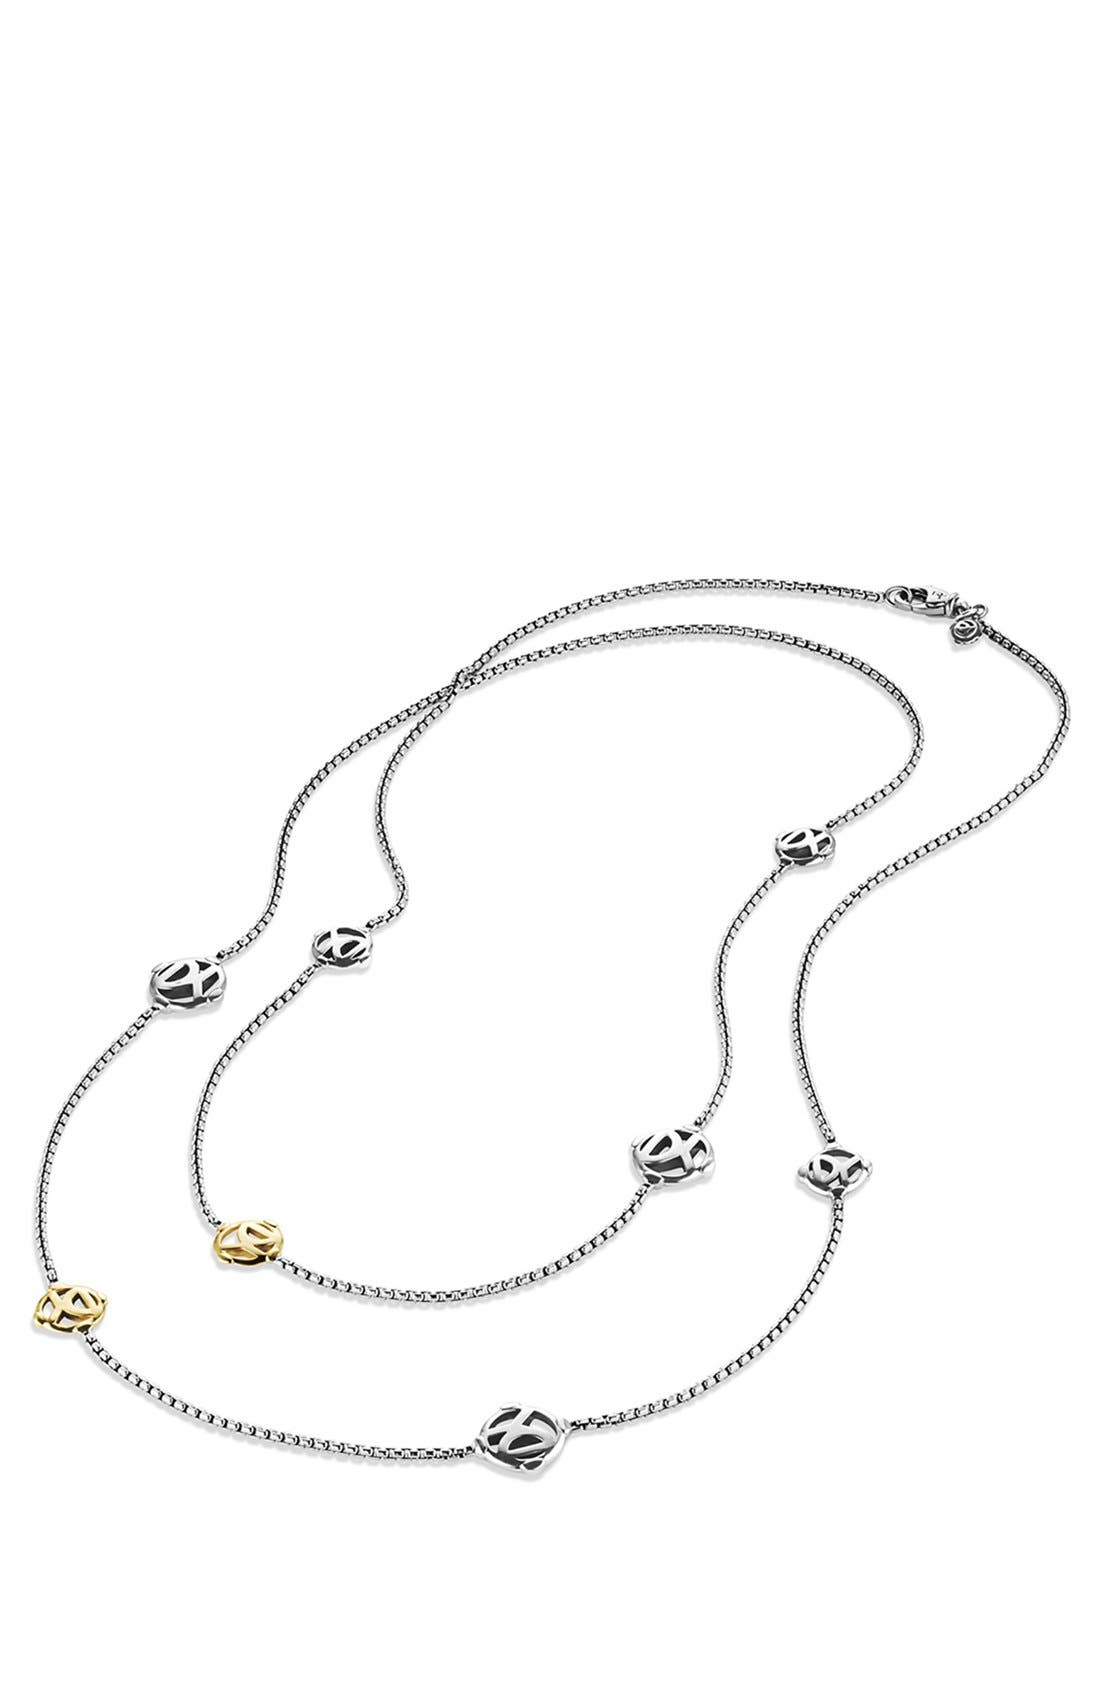 'Chain' DY Logo Chain Necklace with Gold,                             Alternate thumbnail 3, color,                             040